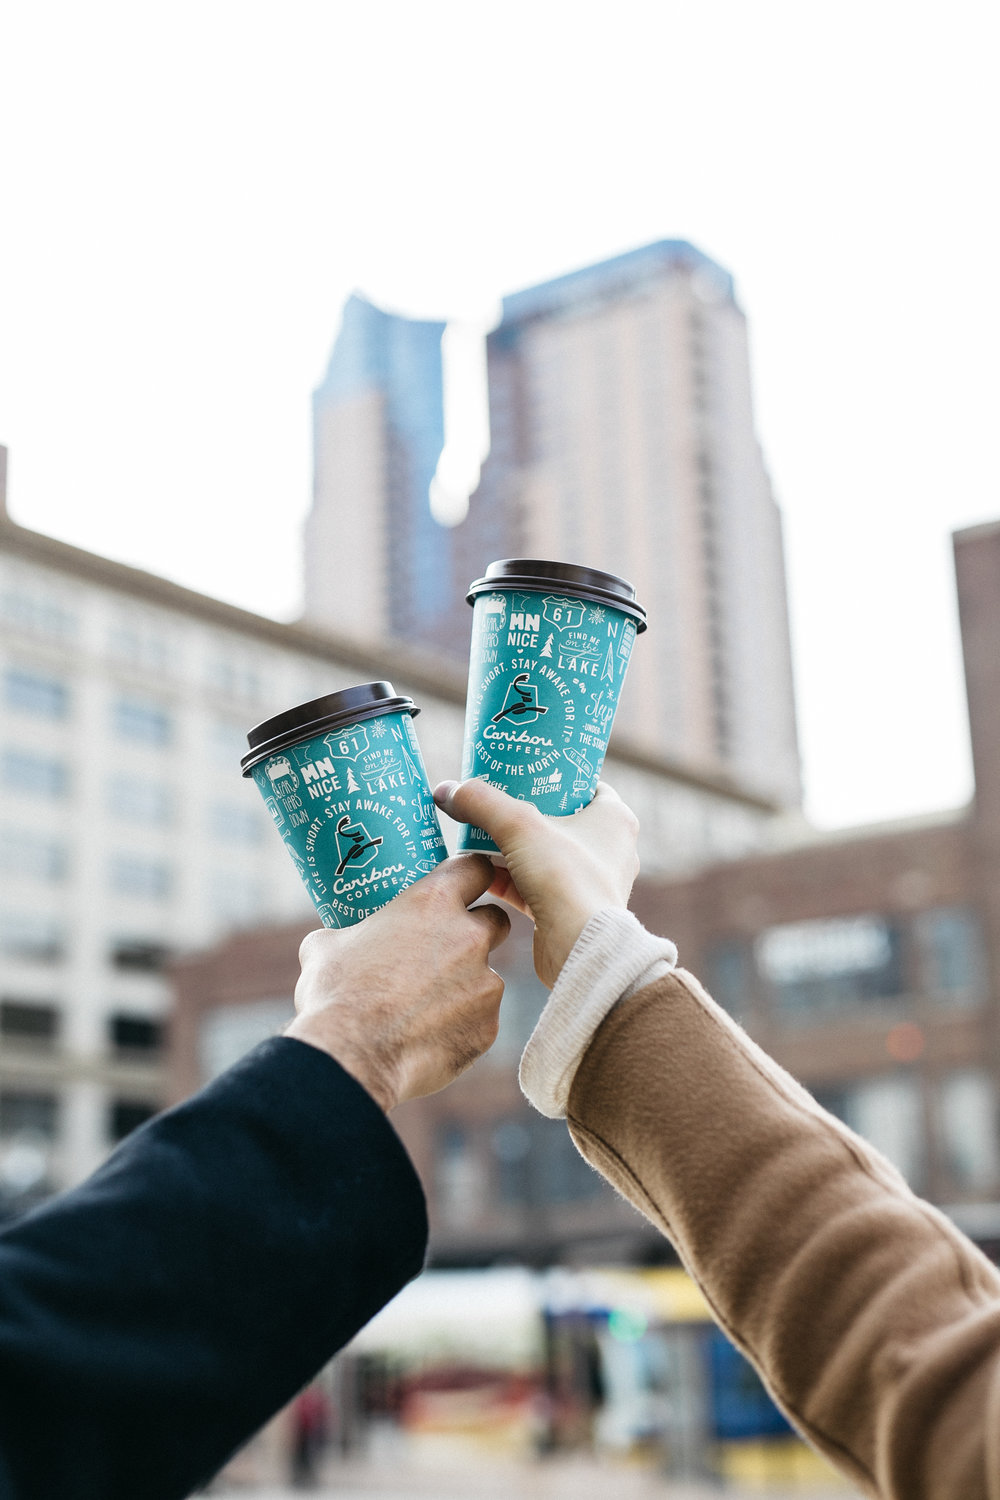 caribou coffee bethany catharine schrock bethcath marketing media lifestyle social media photograph minneapolis